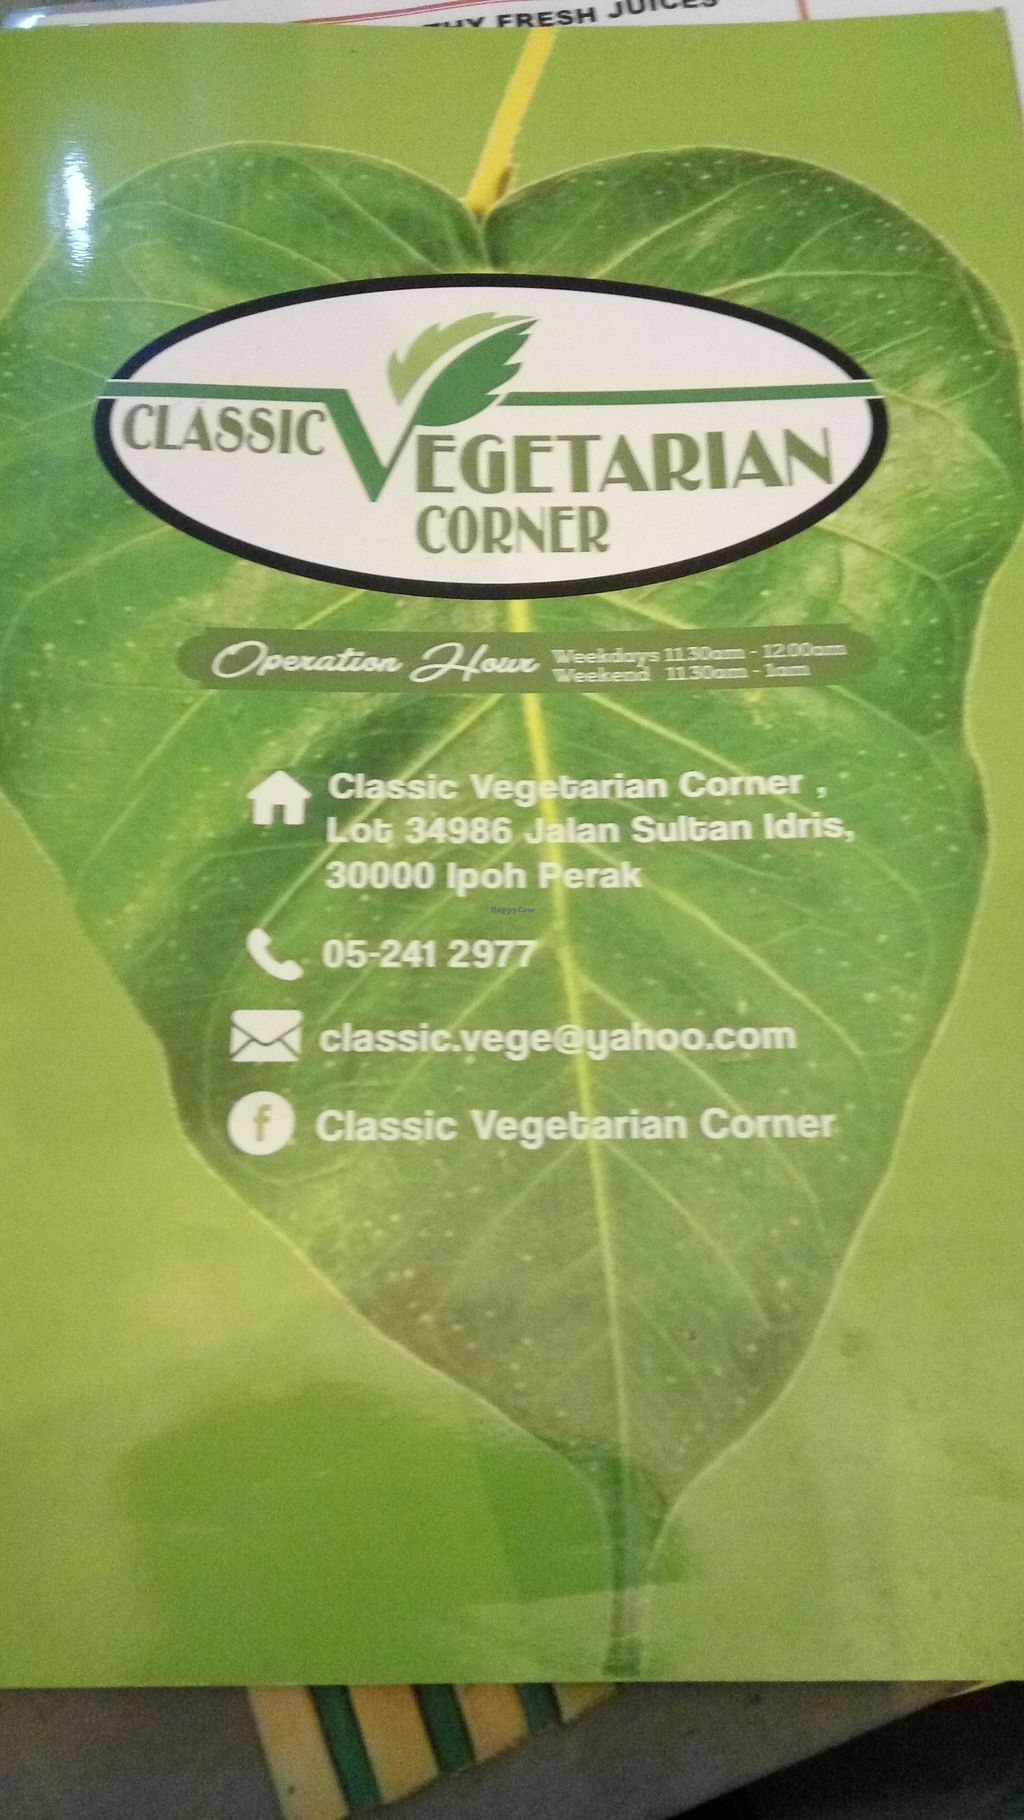 "Photo of Classic Vegetarian Corner  by <a href=""/members/profile/nac2k"">nac2k</a> <br/>Menu <br/> June 25, 2017  - <a href='/contact/abuse/image/94766/273444'>Report</a>"